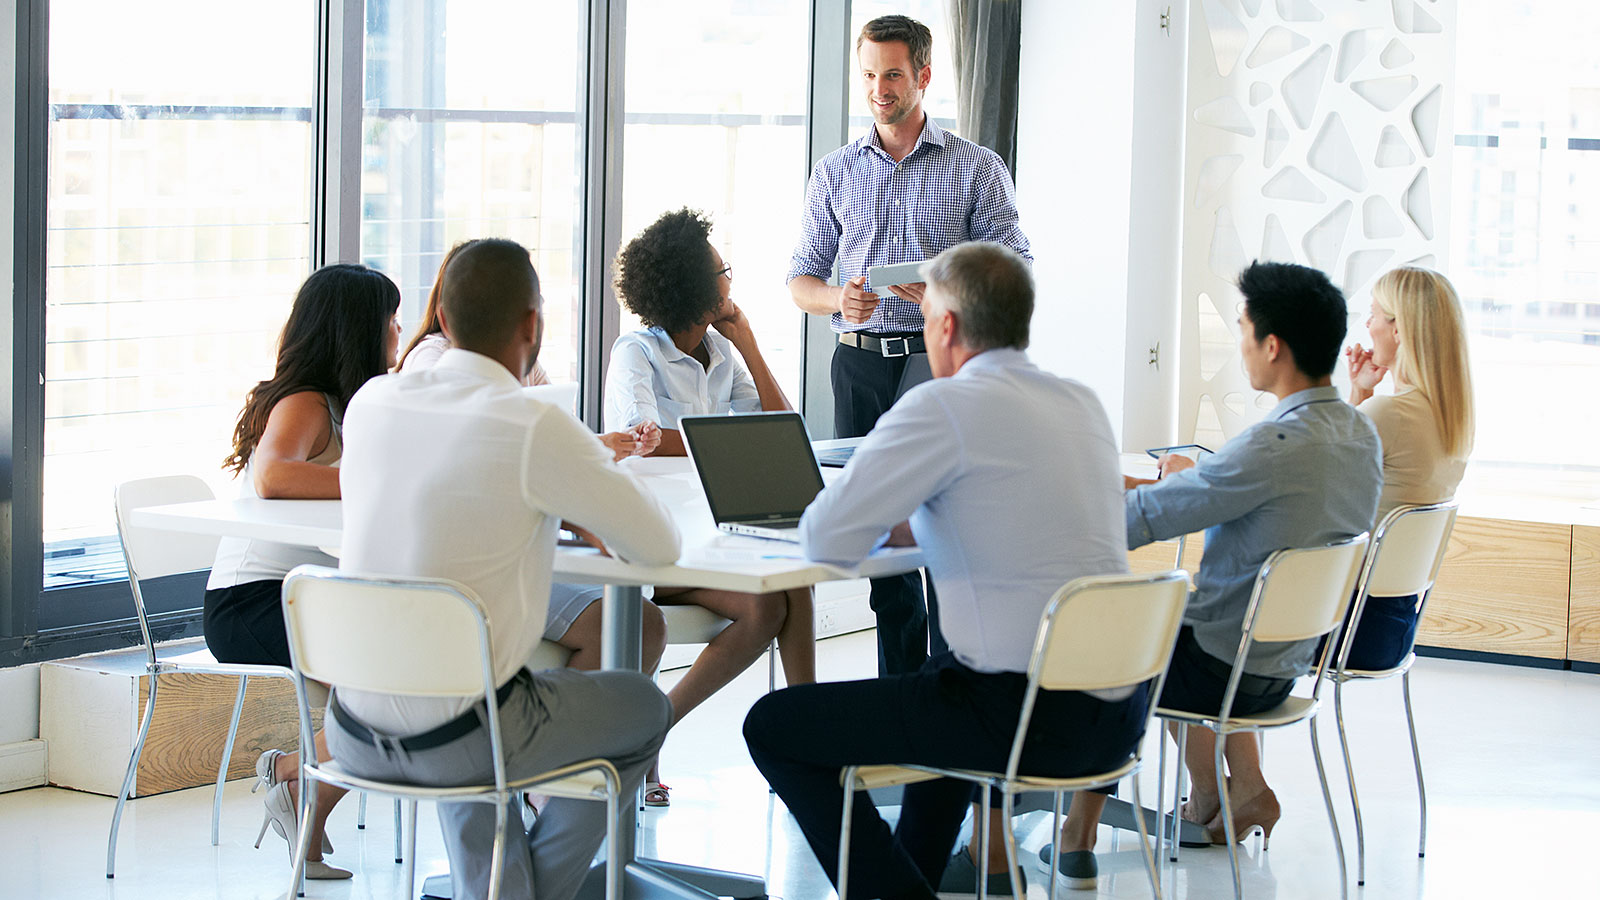 Quick tips for boosting your confidence during your next business presentation